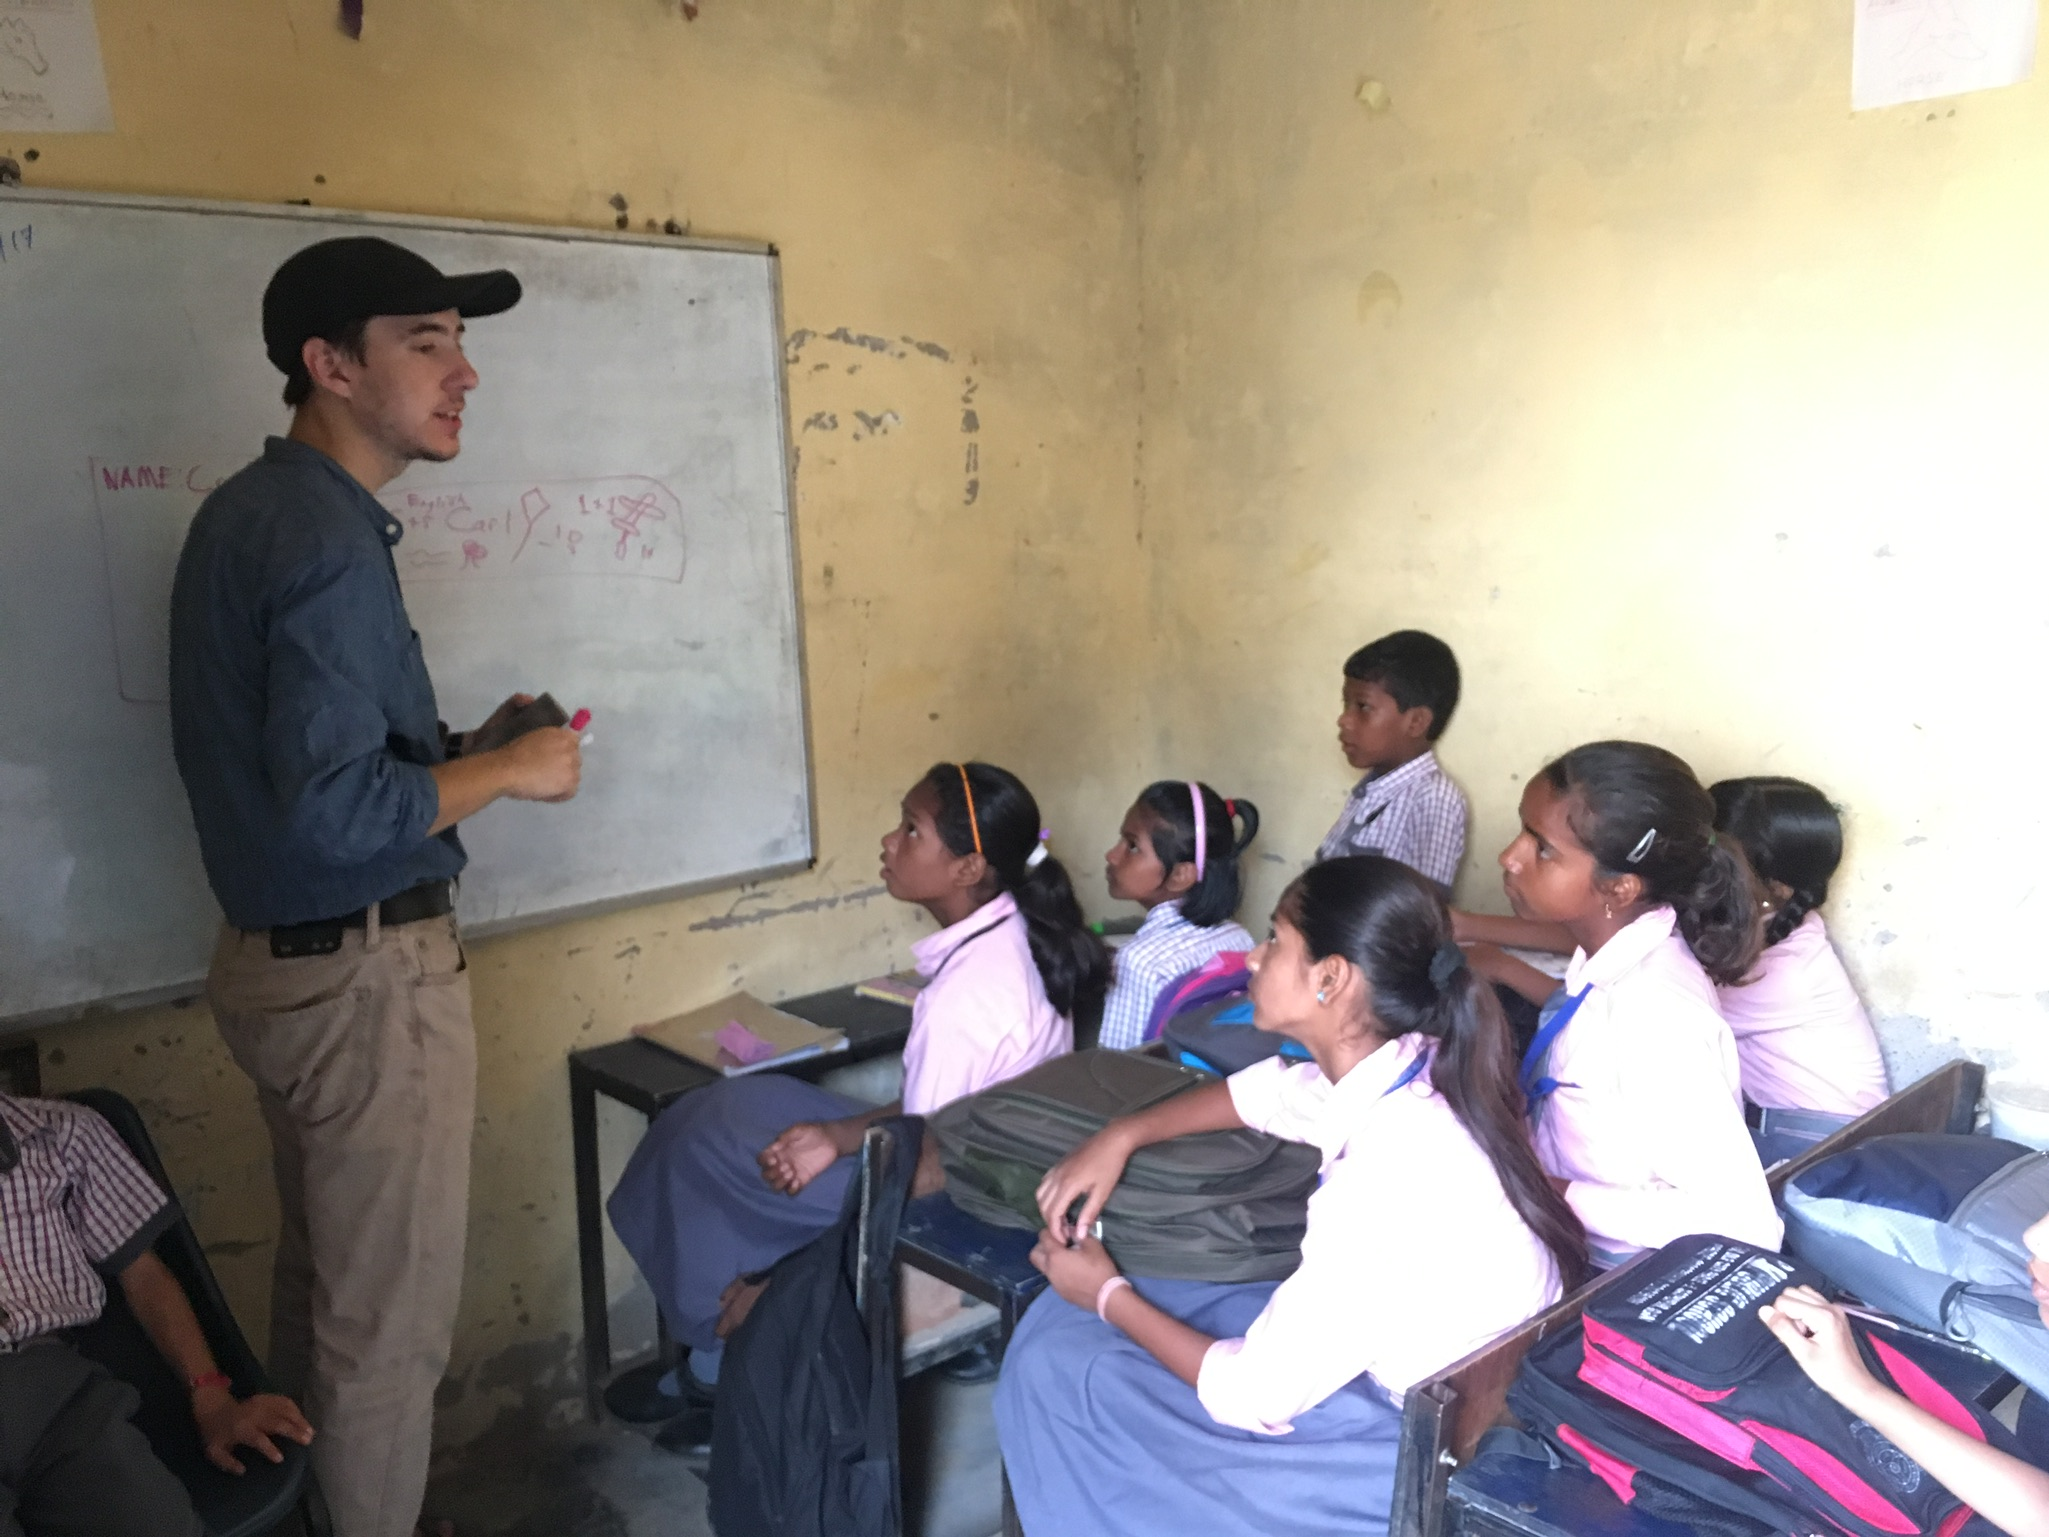 Carl Cook, along with the intern team, got the opportunity to assist in teaching students at APS, with whom our ministry is partnering to ensure these students receive a quality education.